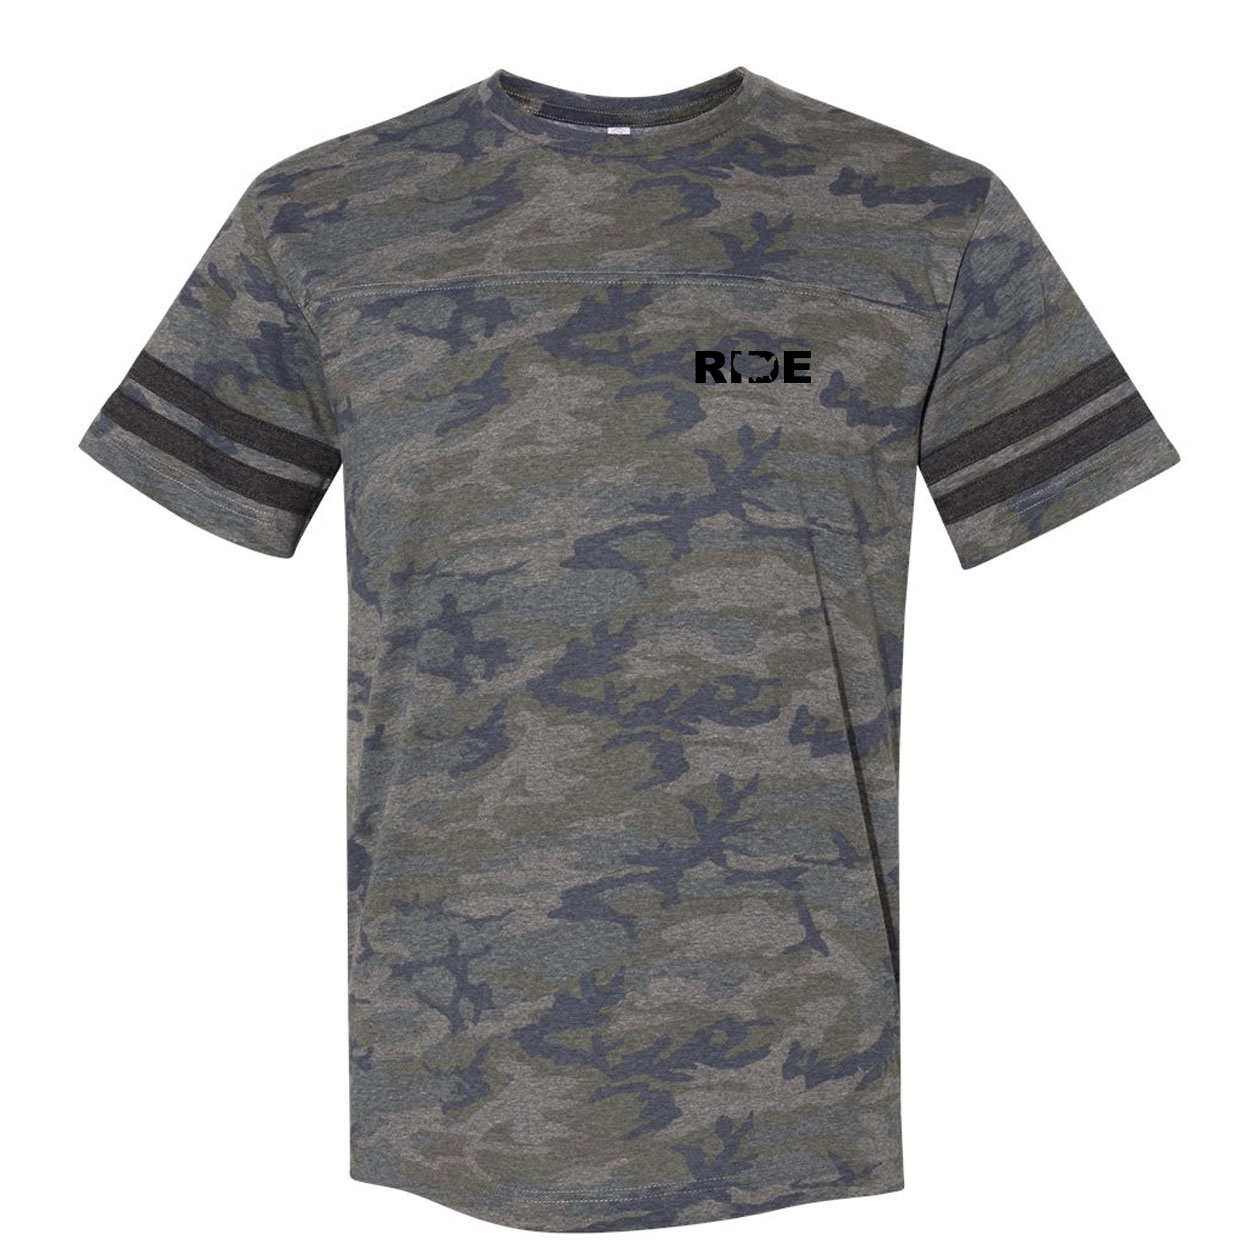 Ride United States Night Out Unisex Premium LAT Jersey T-Shirt Vintage Camo/Vintage Stripes (Black Logo)